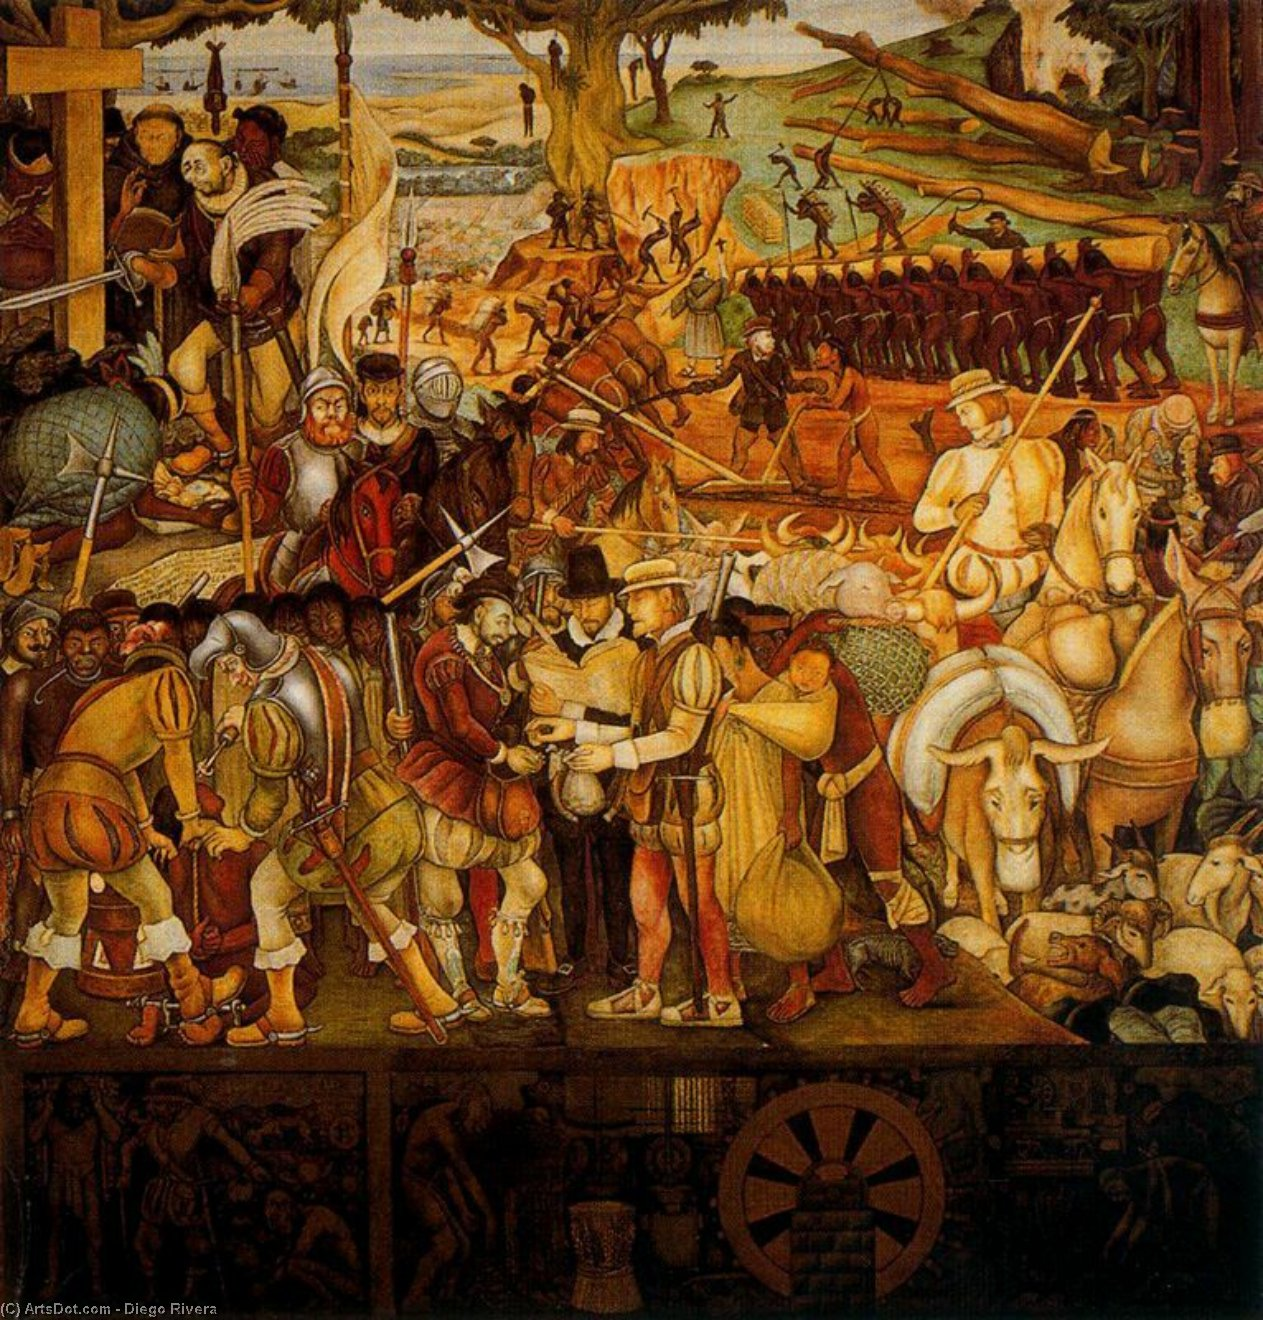 Colonisation, 'The Great City of Tenochtitlan', 1952 by Diego Rivera (1886-1957, Mexico)